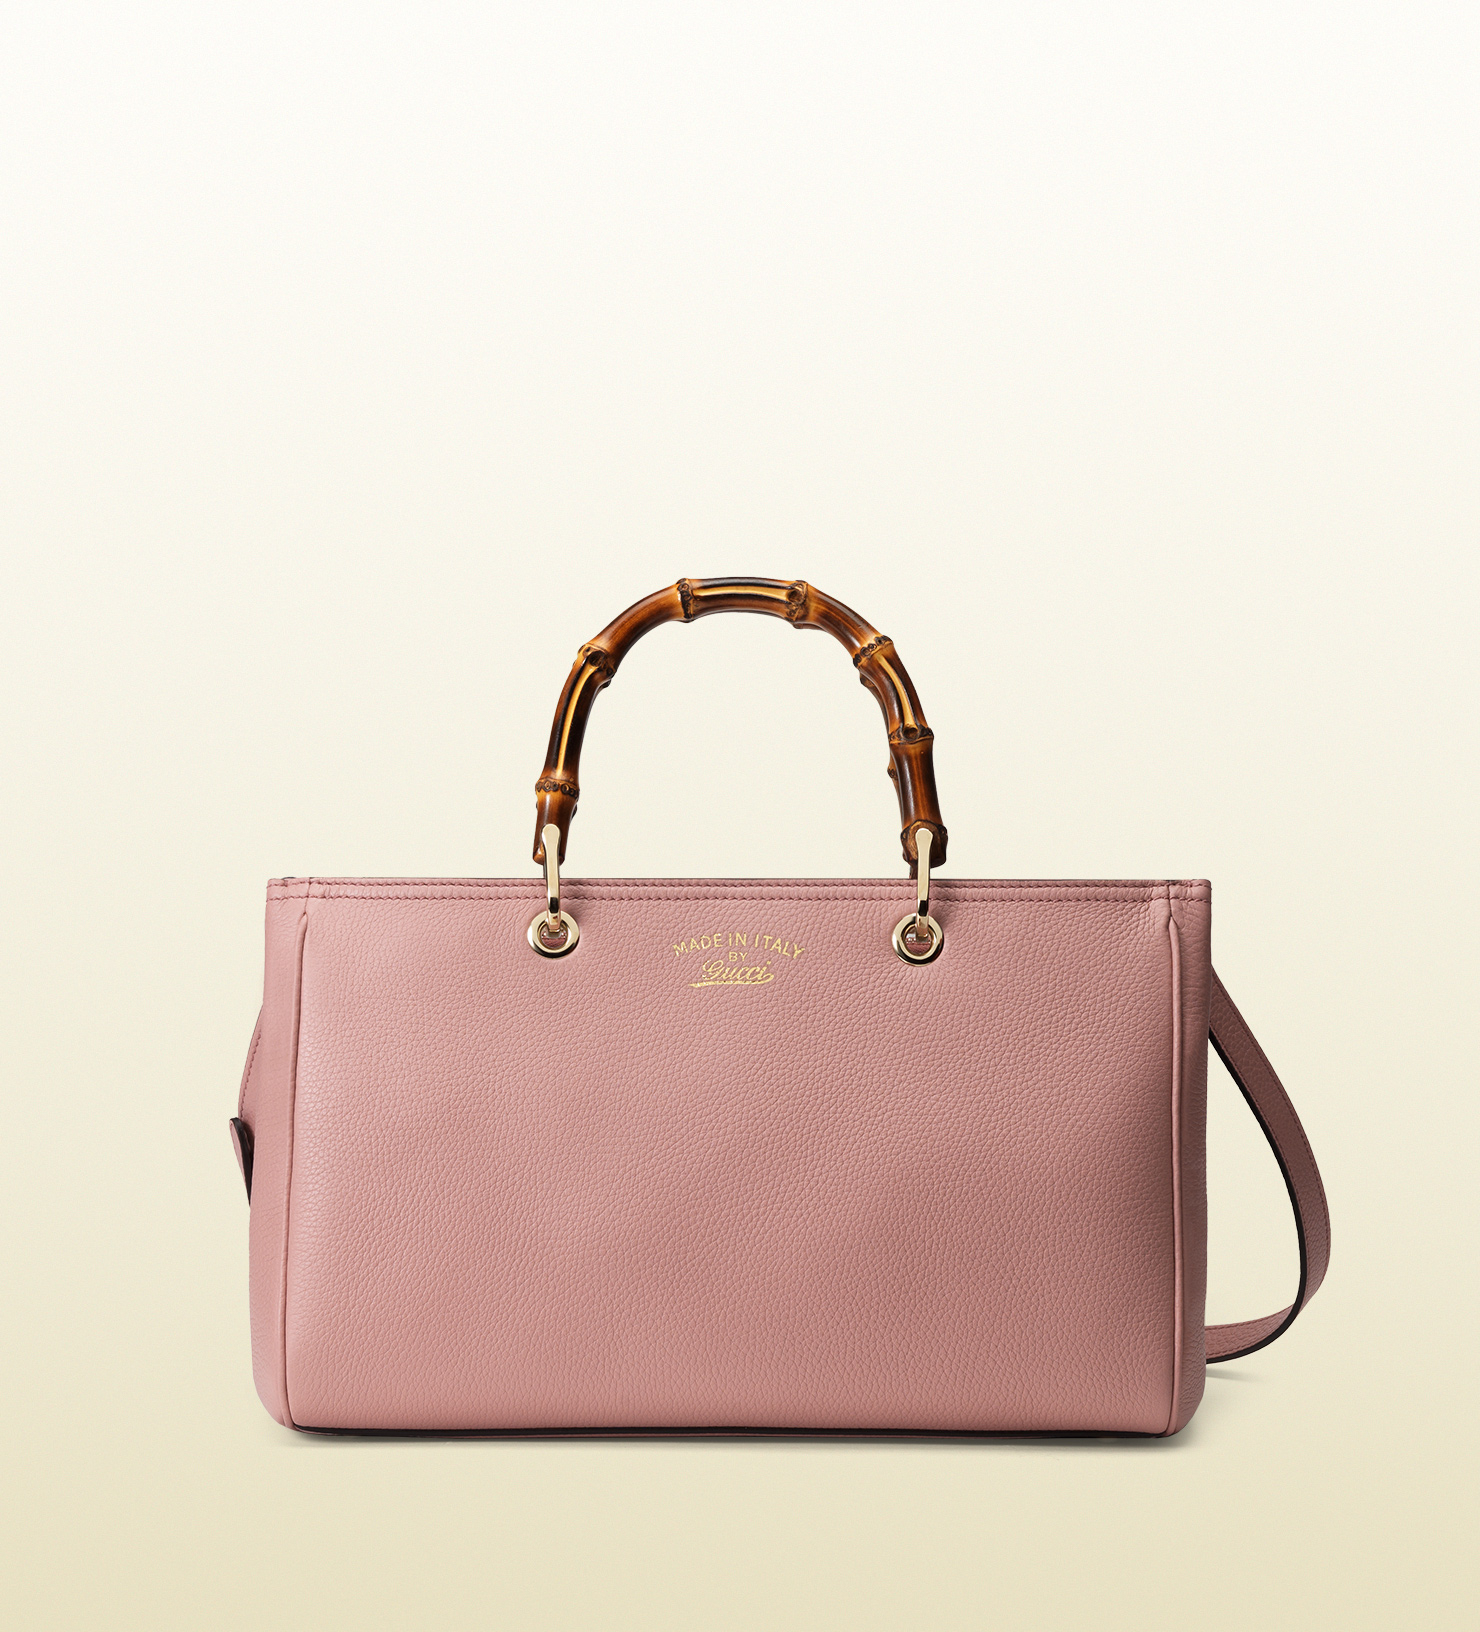 a988eff5cc08 Gucci Bamboo Shopper Leather Tote in Pink - Lyst